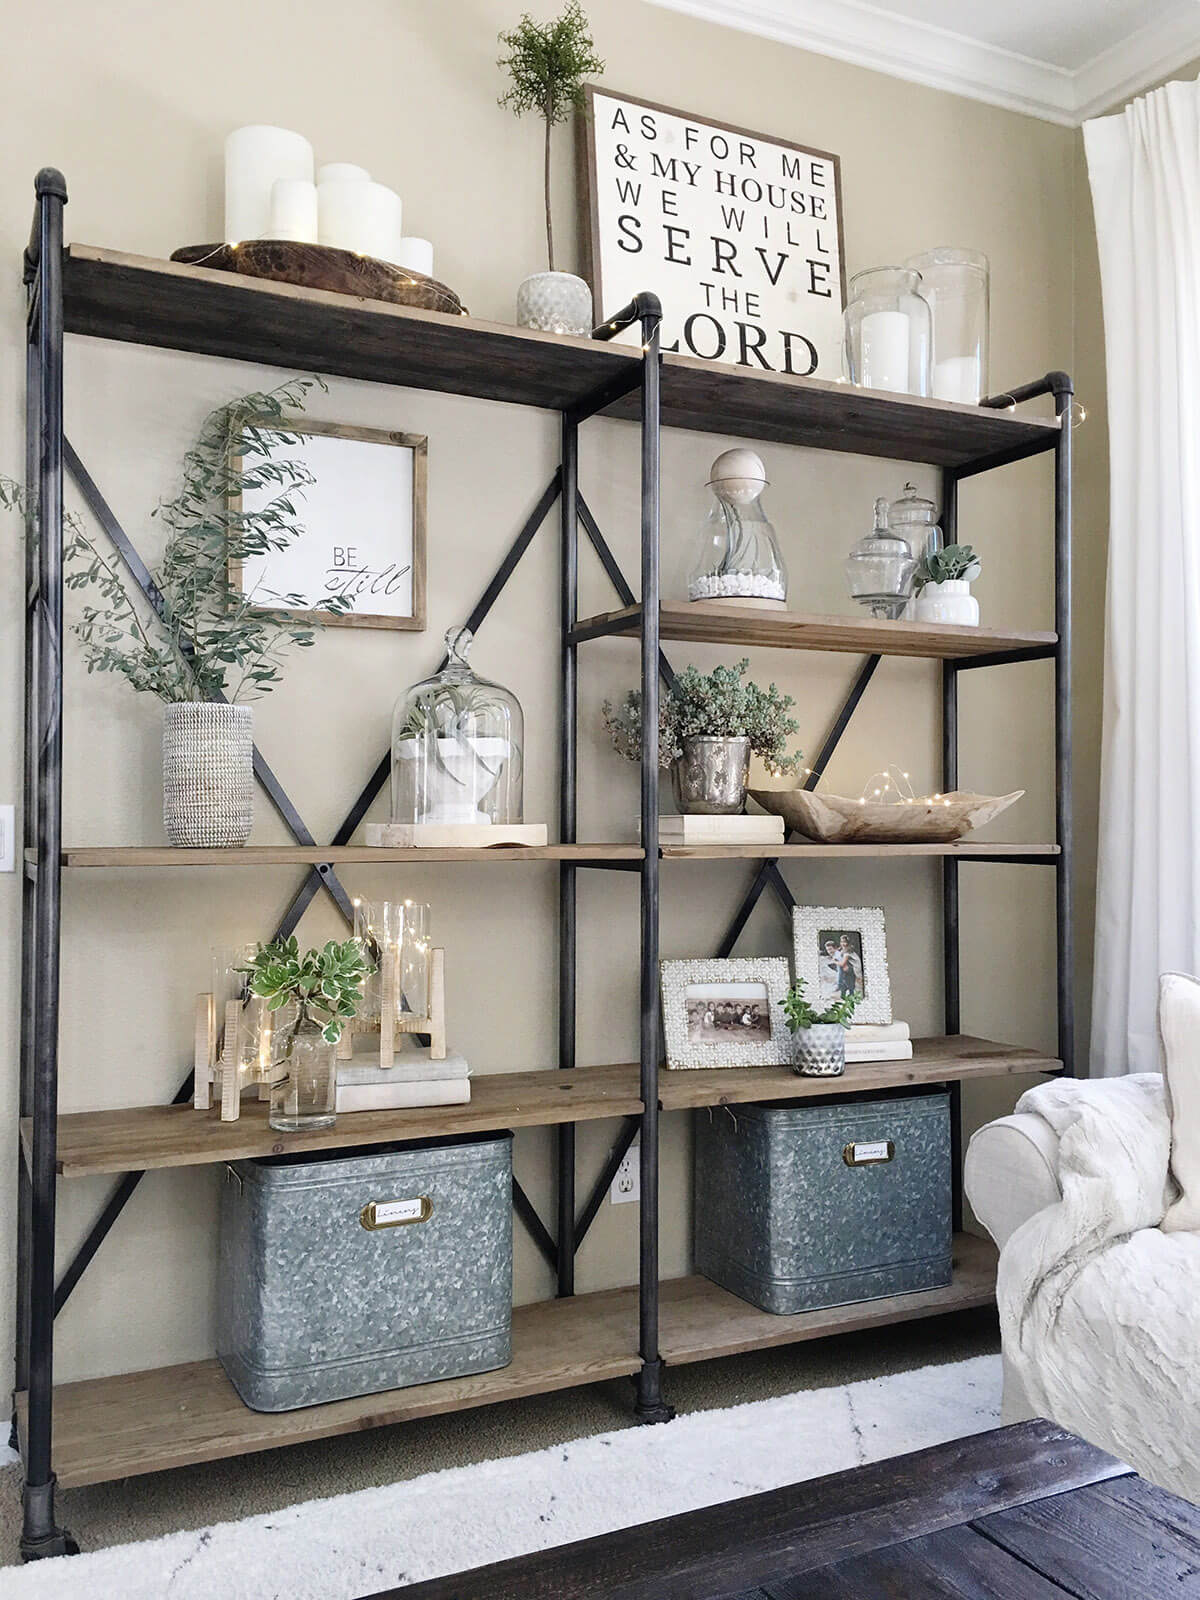 Open Industrial Style Bookshelf with White Accents